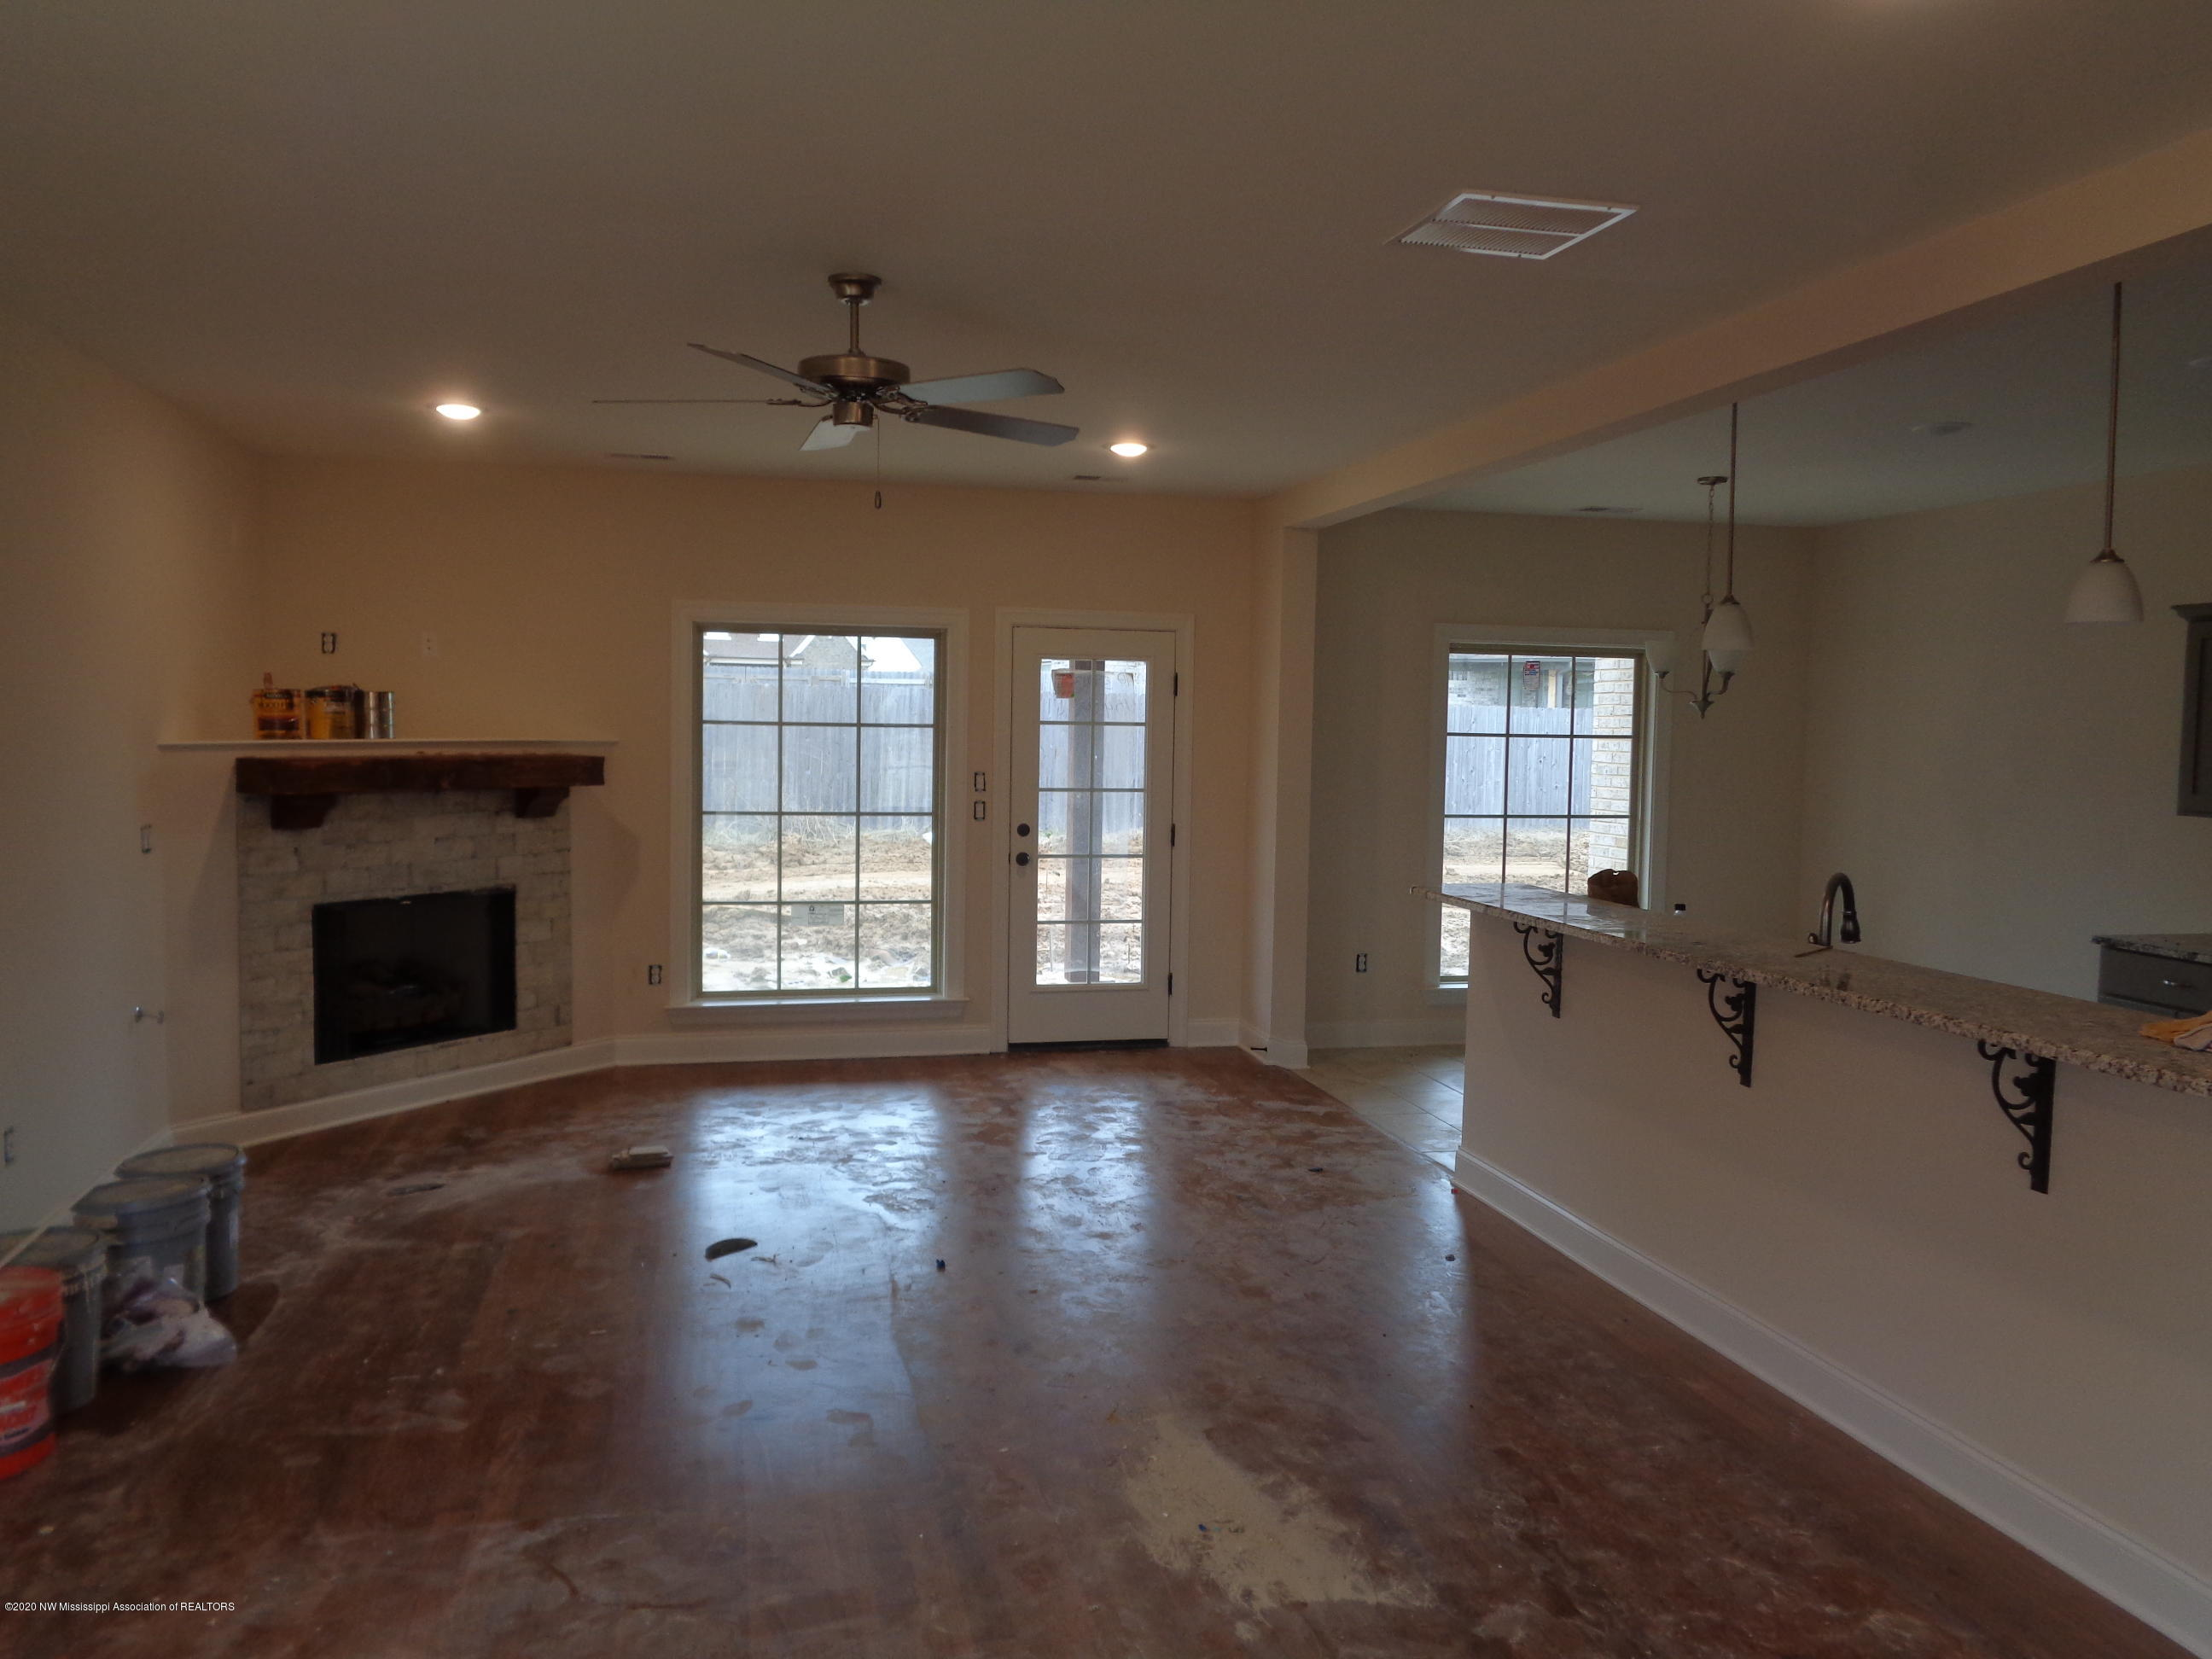 5363 BALTERSON COVE, DeSoto, Mississippi 38654, 3 Bedrooms Bedrooms, ,3 BathroomsBathrooms,Residential,For Sale,BALTERSON COVE,331458